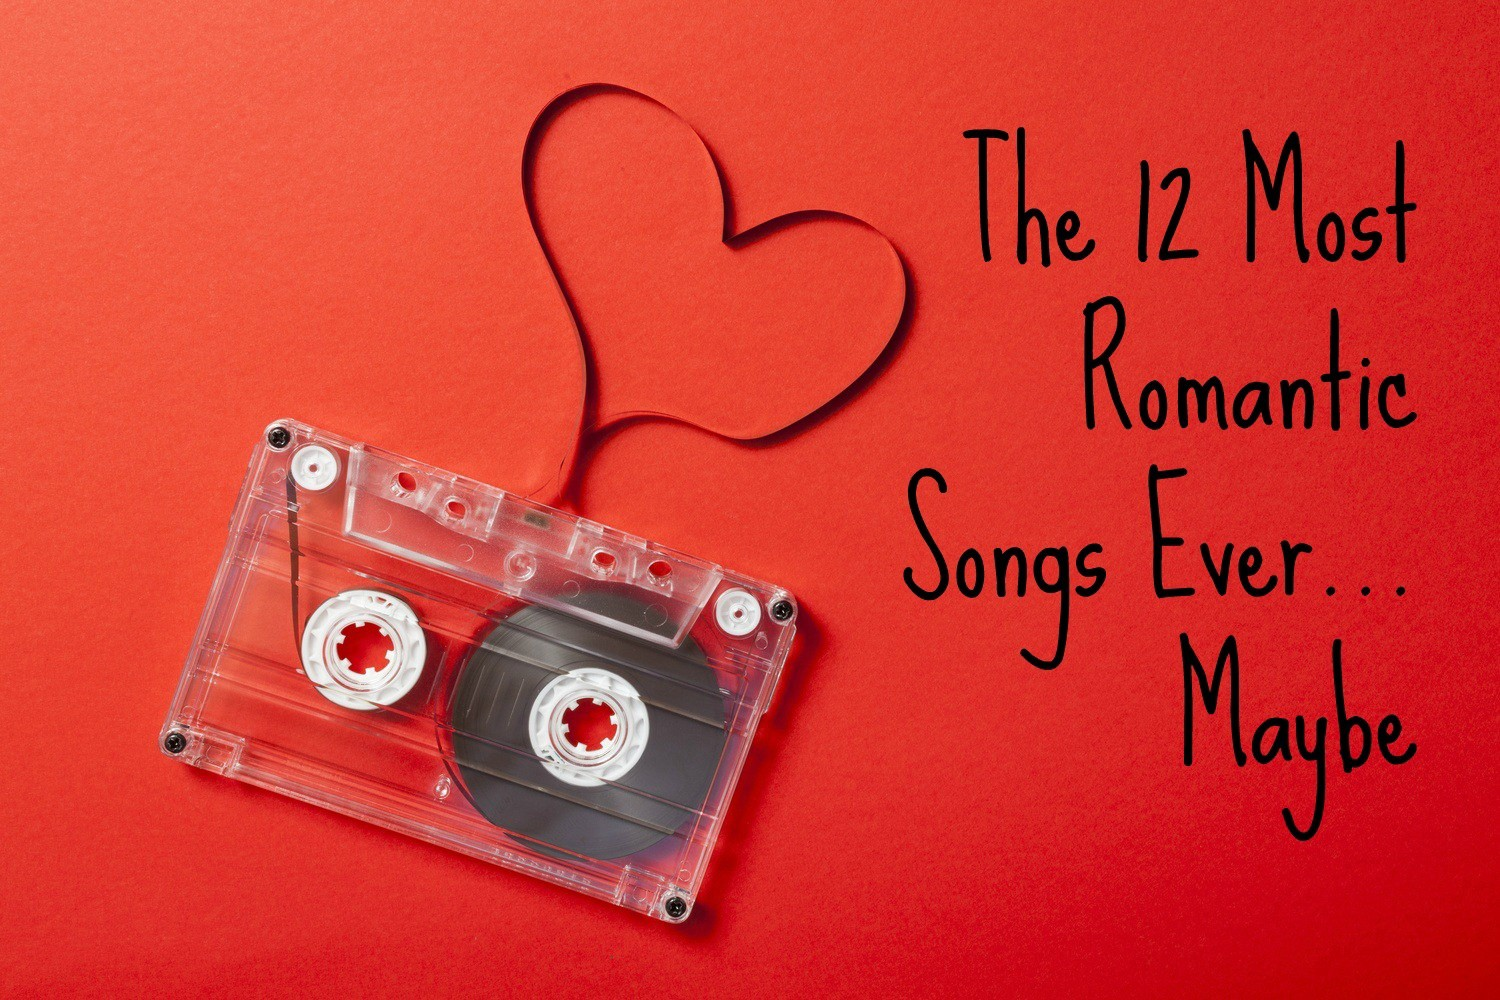 Most romantic songs of all time